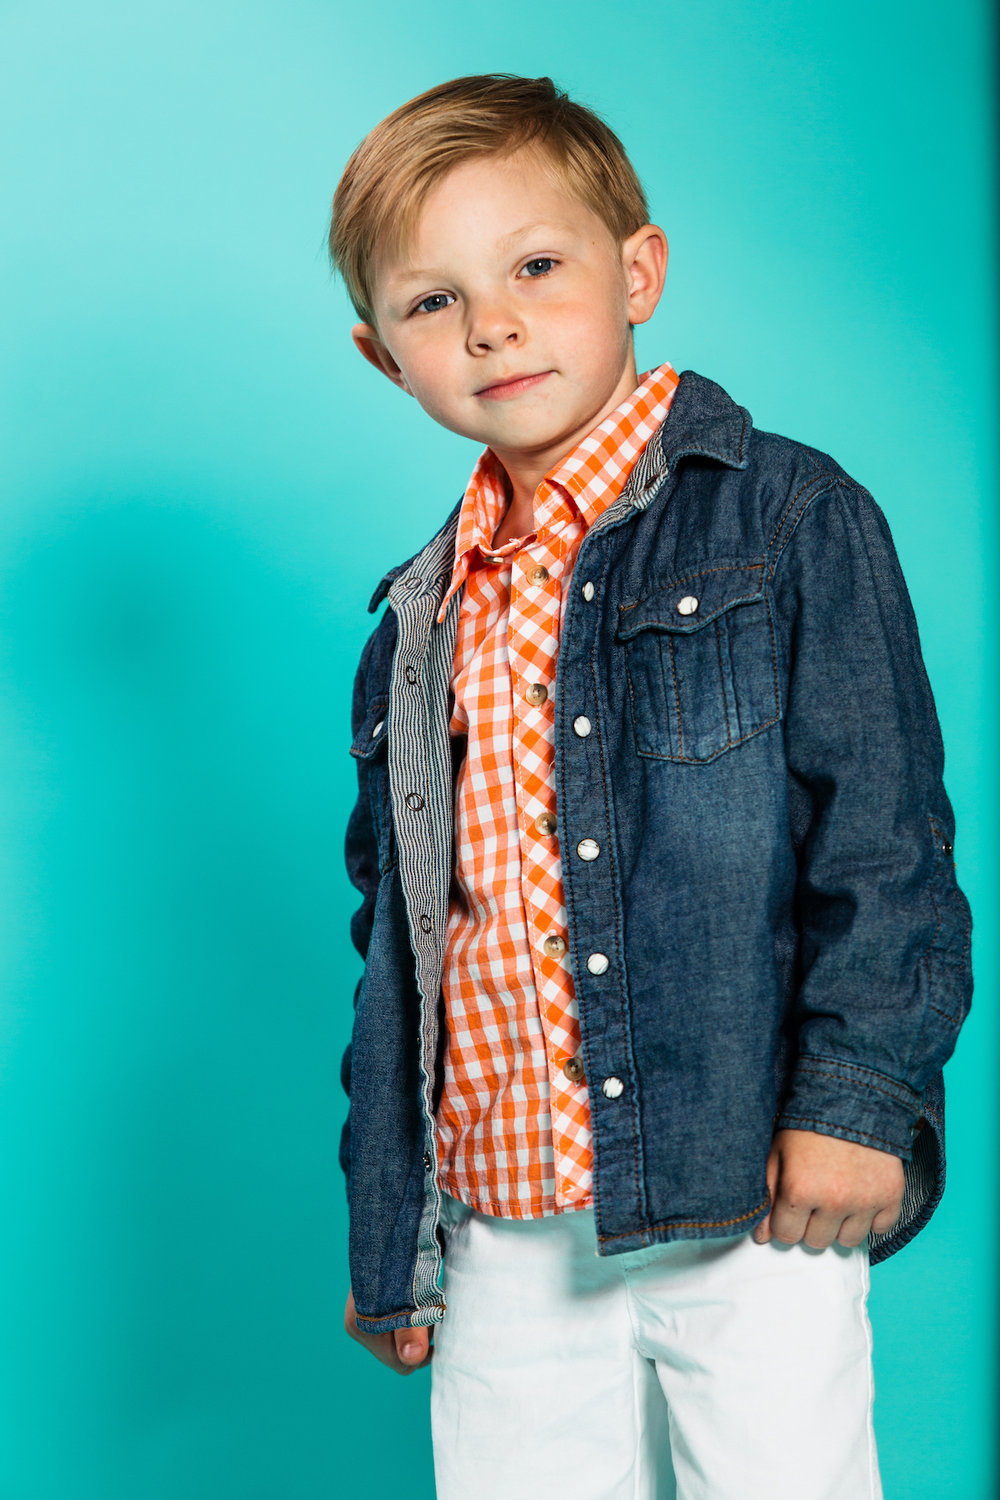 Cody Leo - Cody is excited to work in this film alongside his older brother Austin, who portrays the